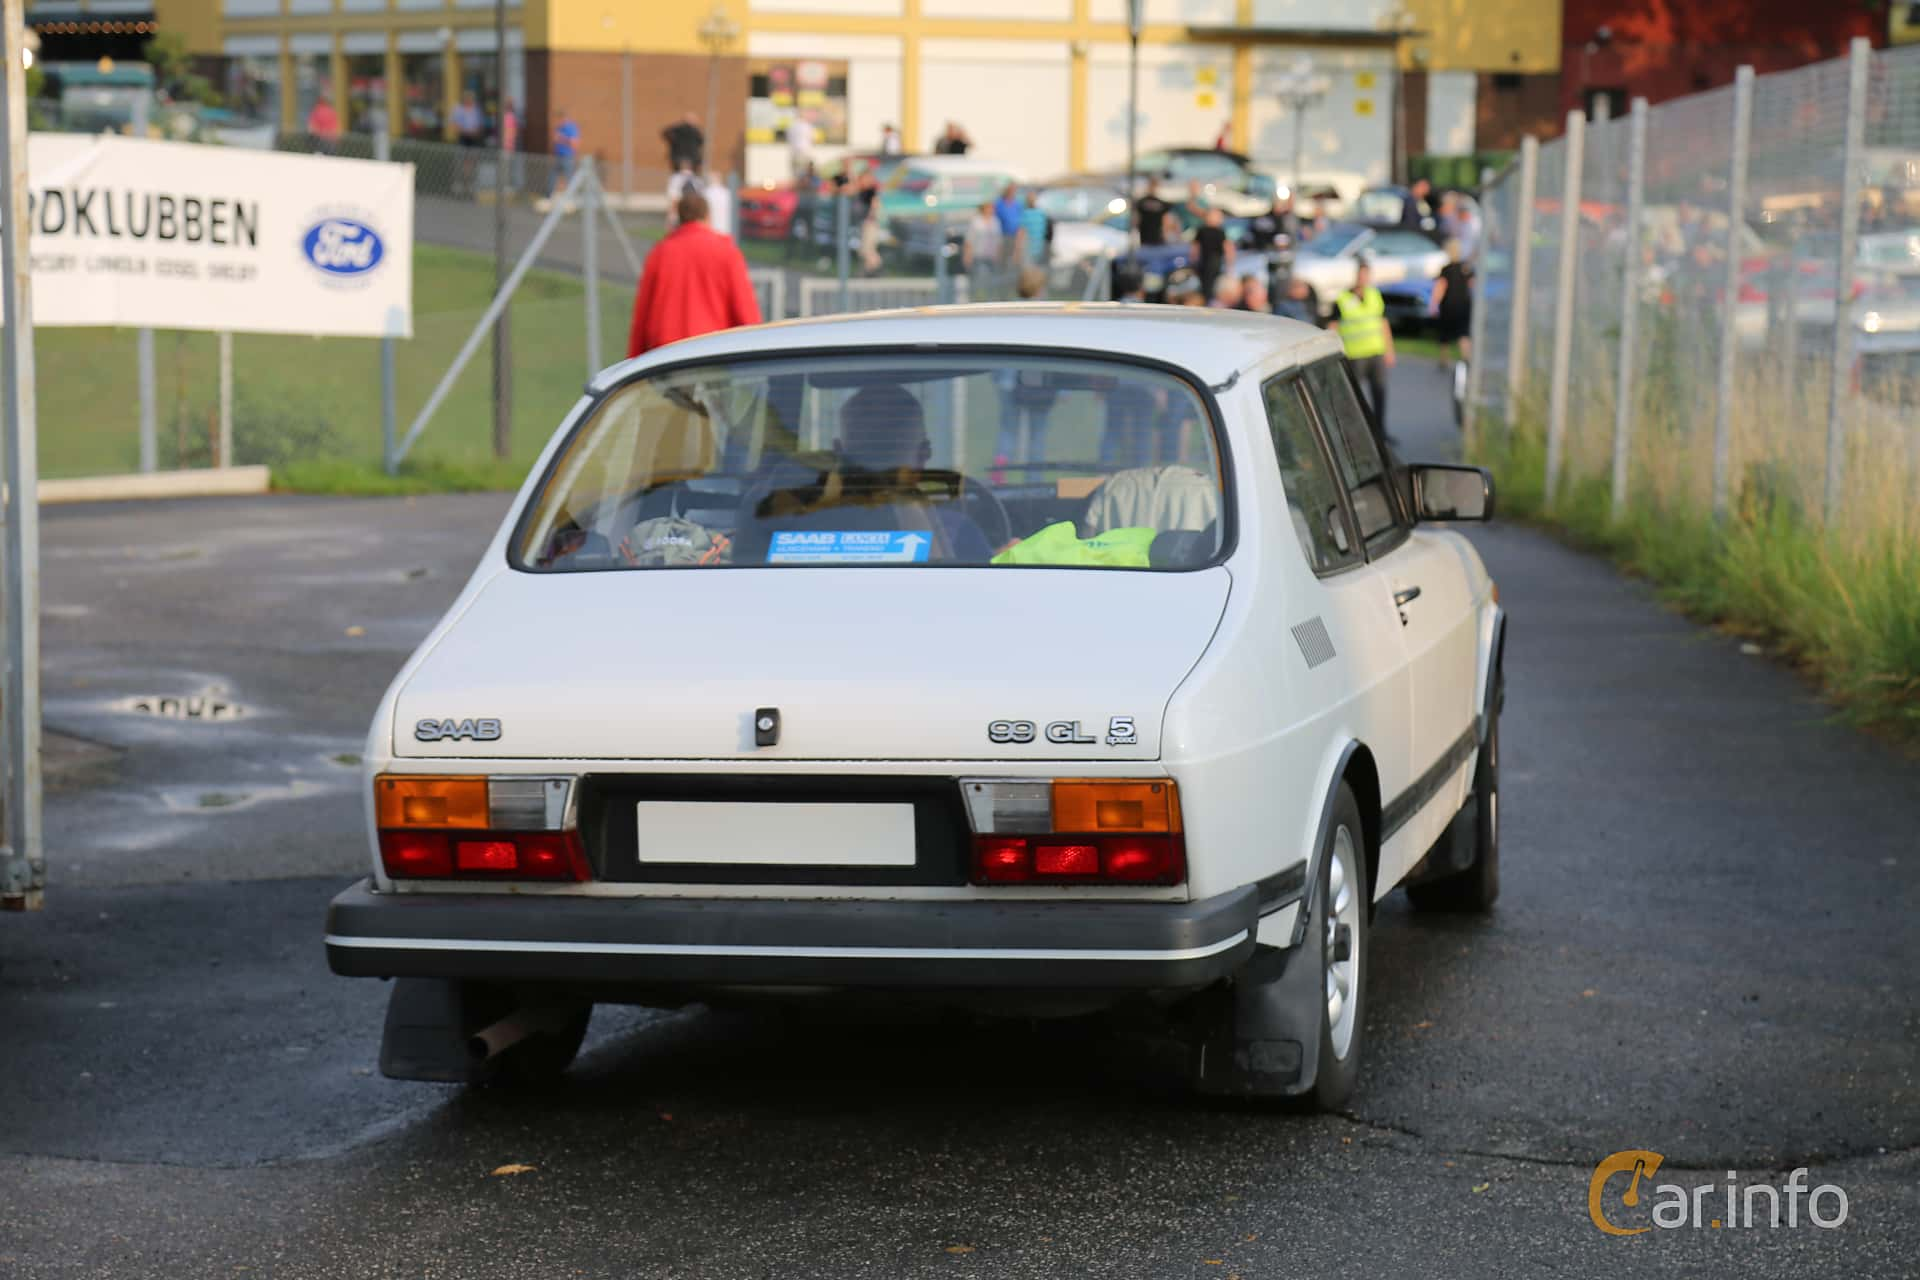 Saab 99 2-door Sedan 2.0 Manual, 100hp, 1984 at Bil & MC-träffar i Huskvarna Folkets Park 2019 Amerikanska fordon